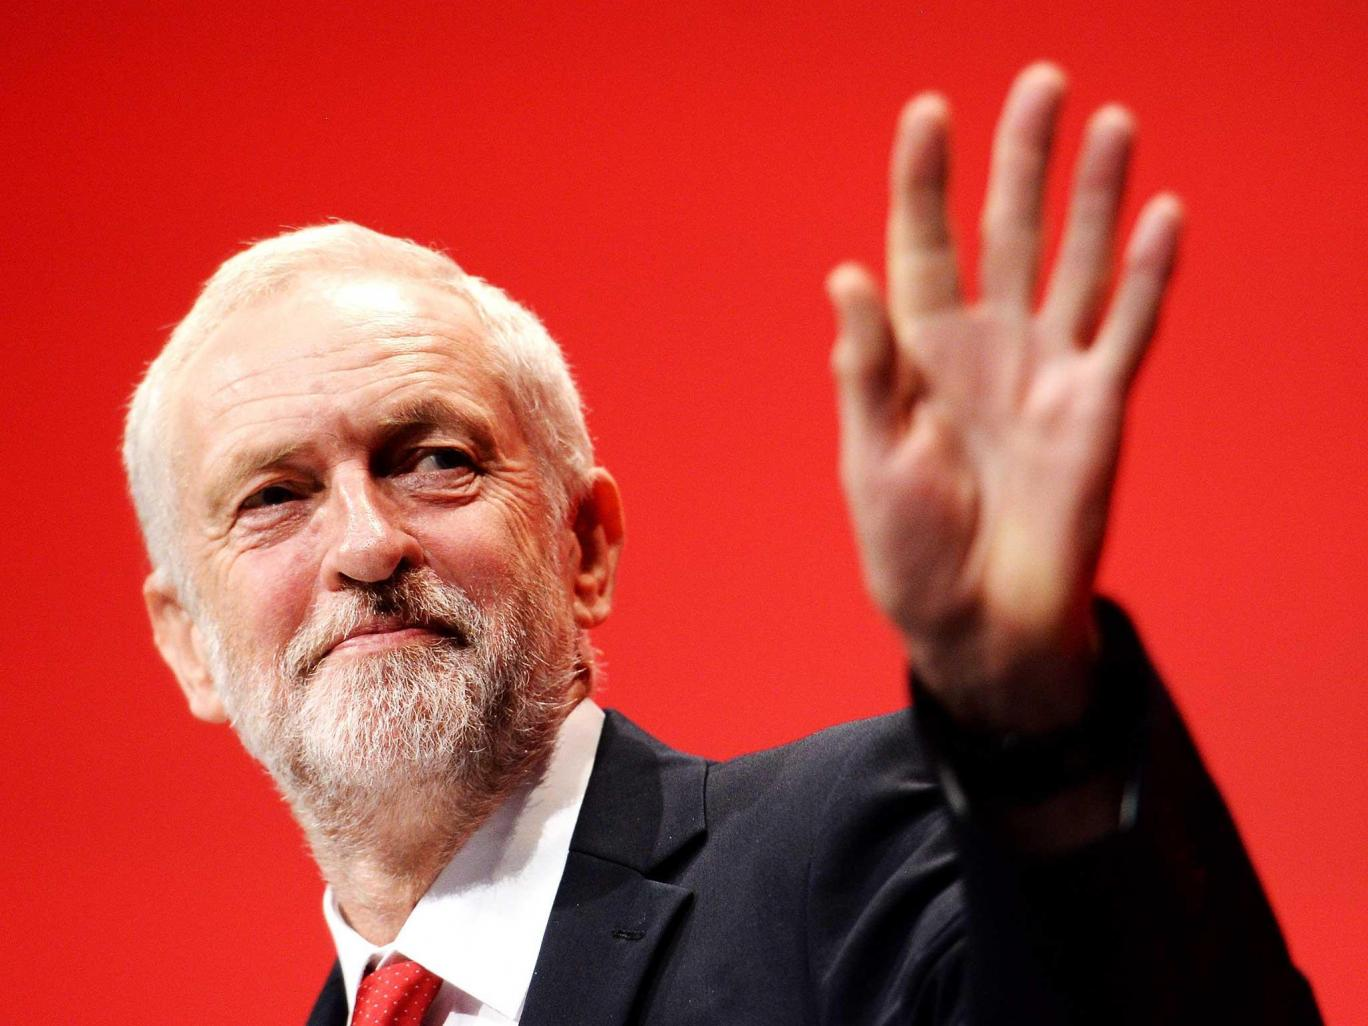 Labour Party supports self-determination and referenda for Tamils: Call to Tamil people to vote for Labour